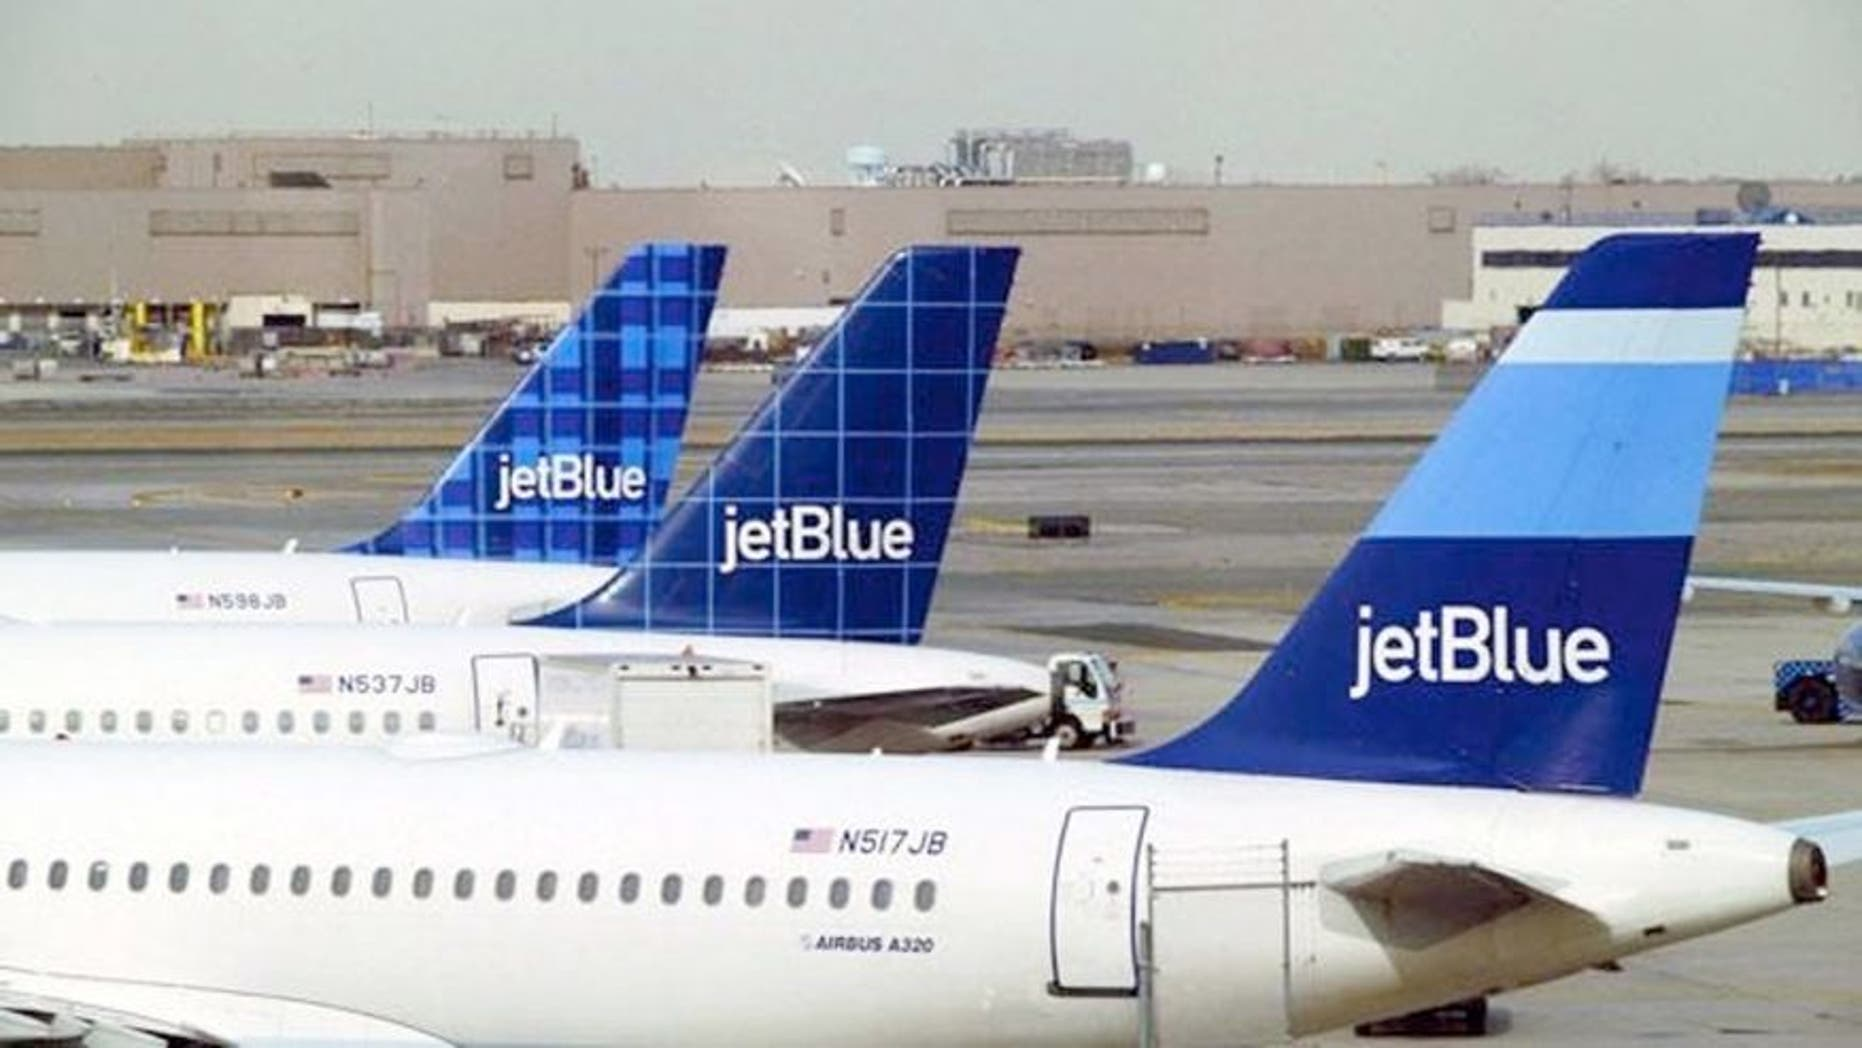 A New Jersey family said they were removed from a JetBlue flight from New York to Las Vegas on Saturday over a birthday cake they brought onto the plane.